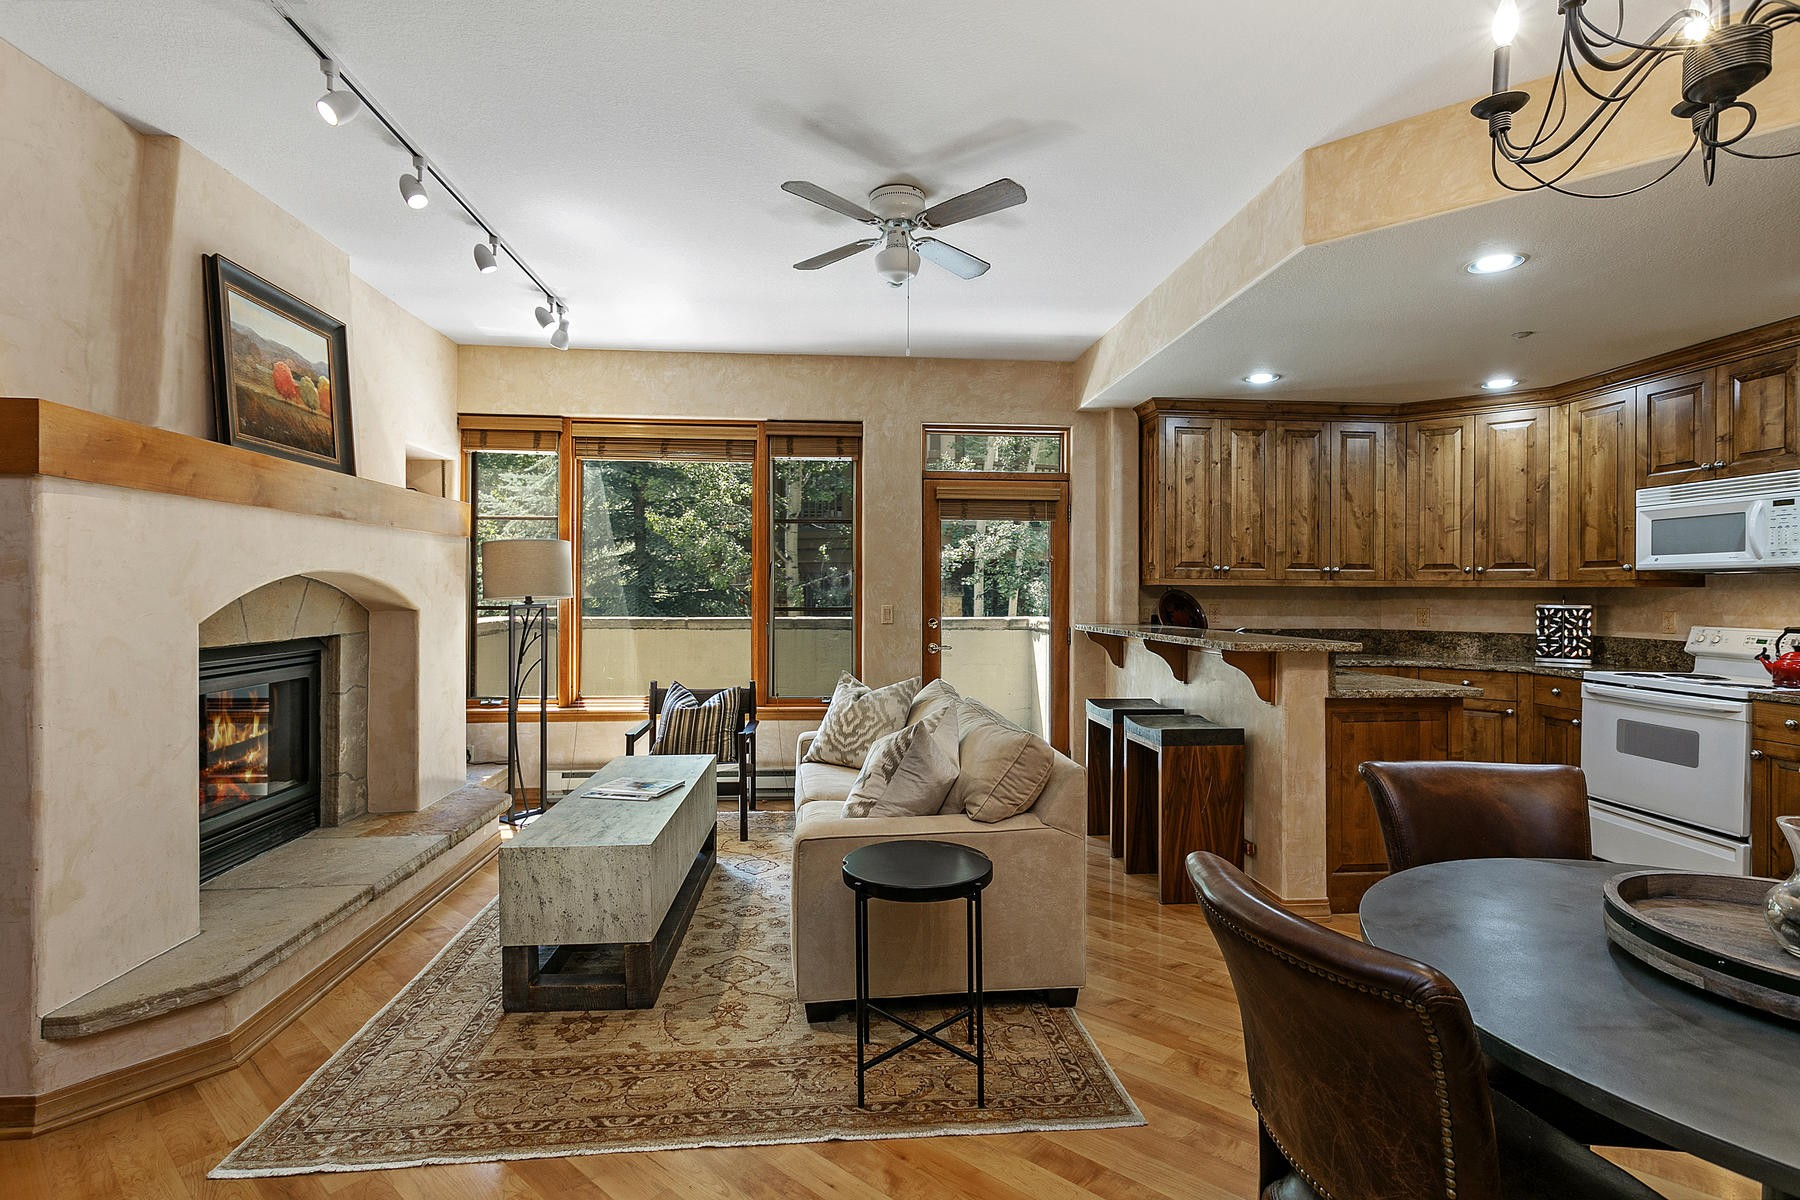 Condominiums للـ Sale في Spruce Tree Lodge #202 627 Sawatch Drive #202, Edwards, Colorado 81632 United States